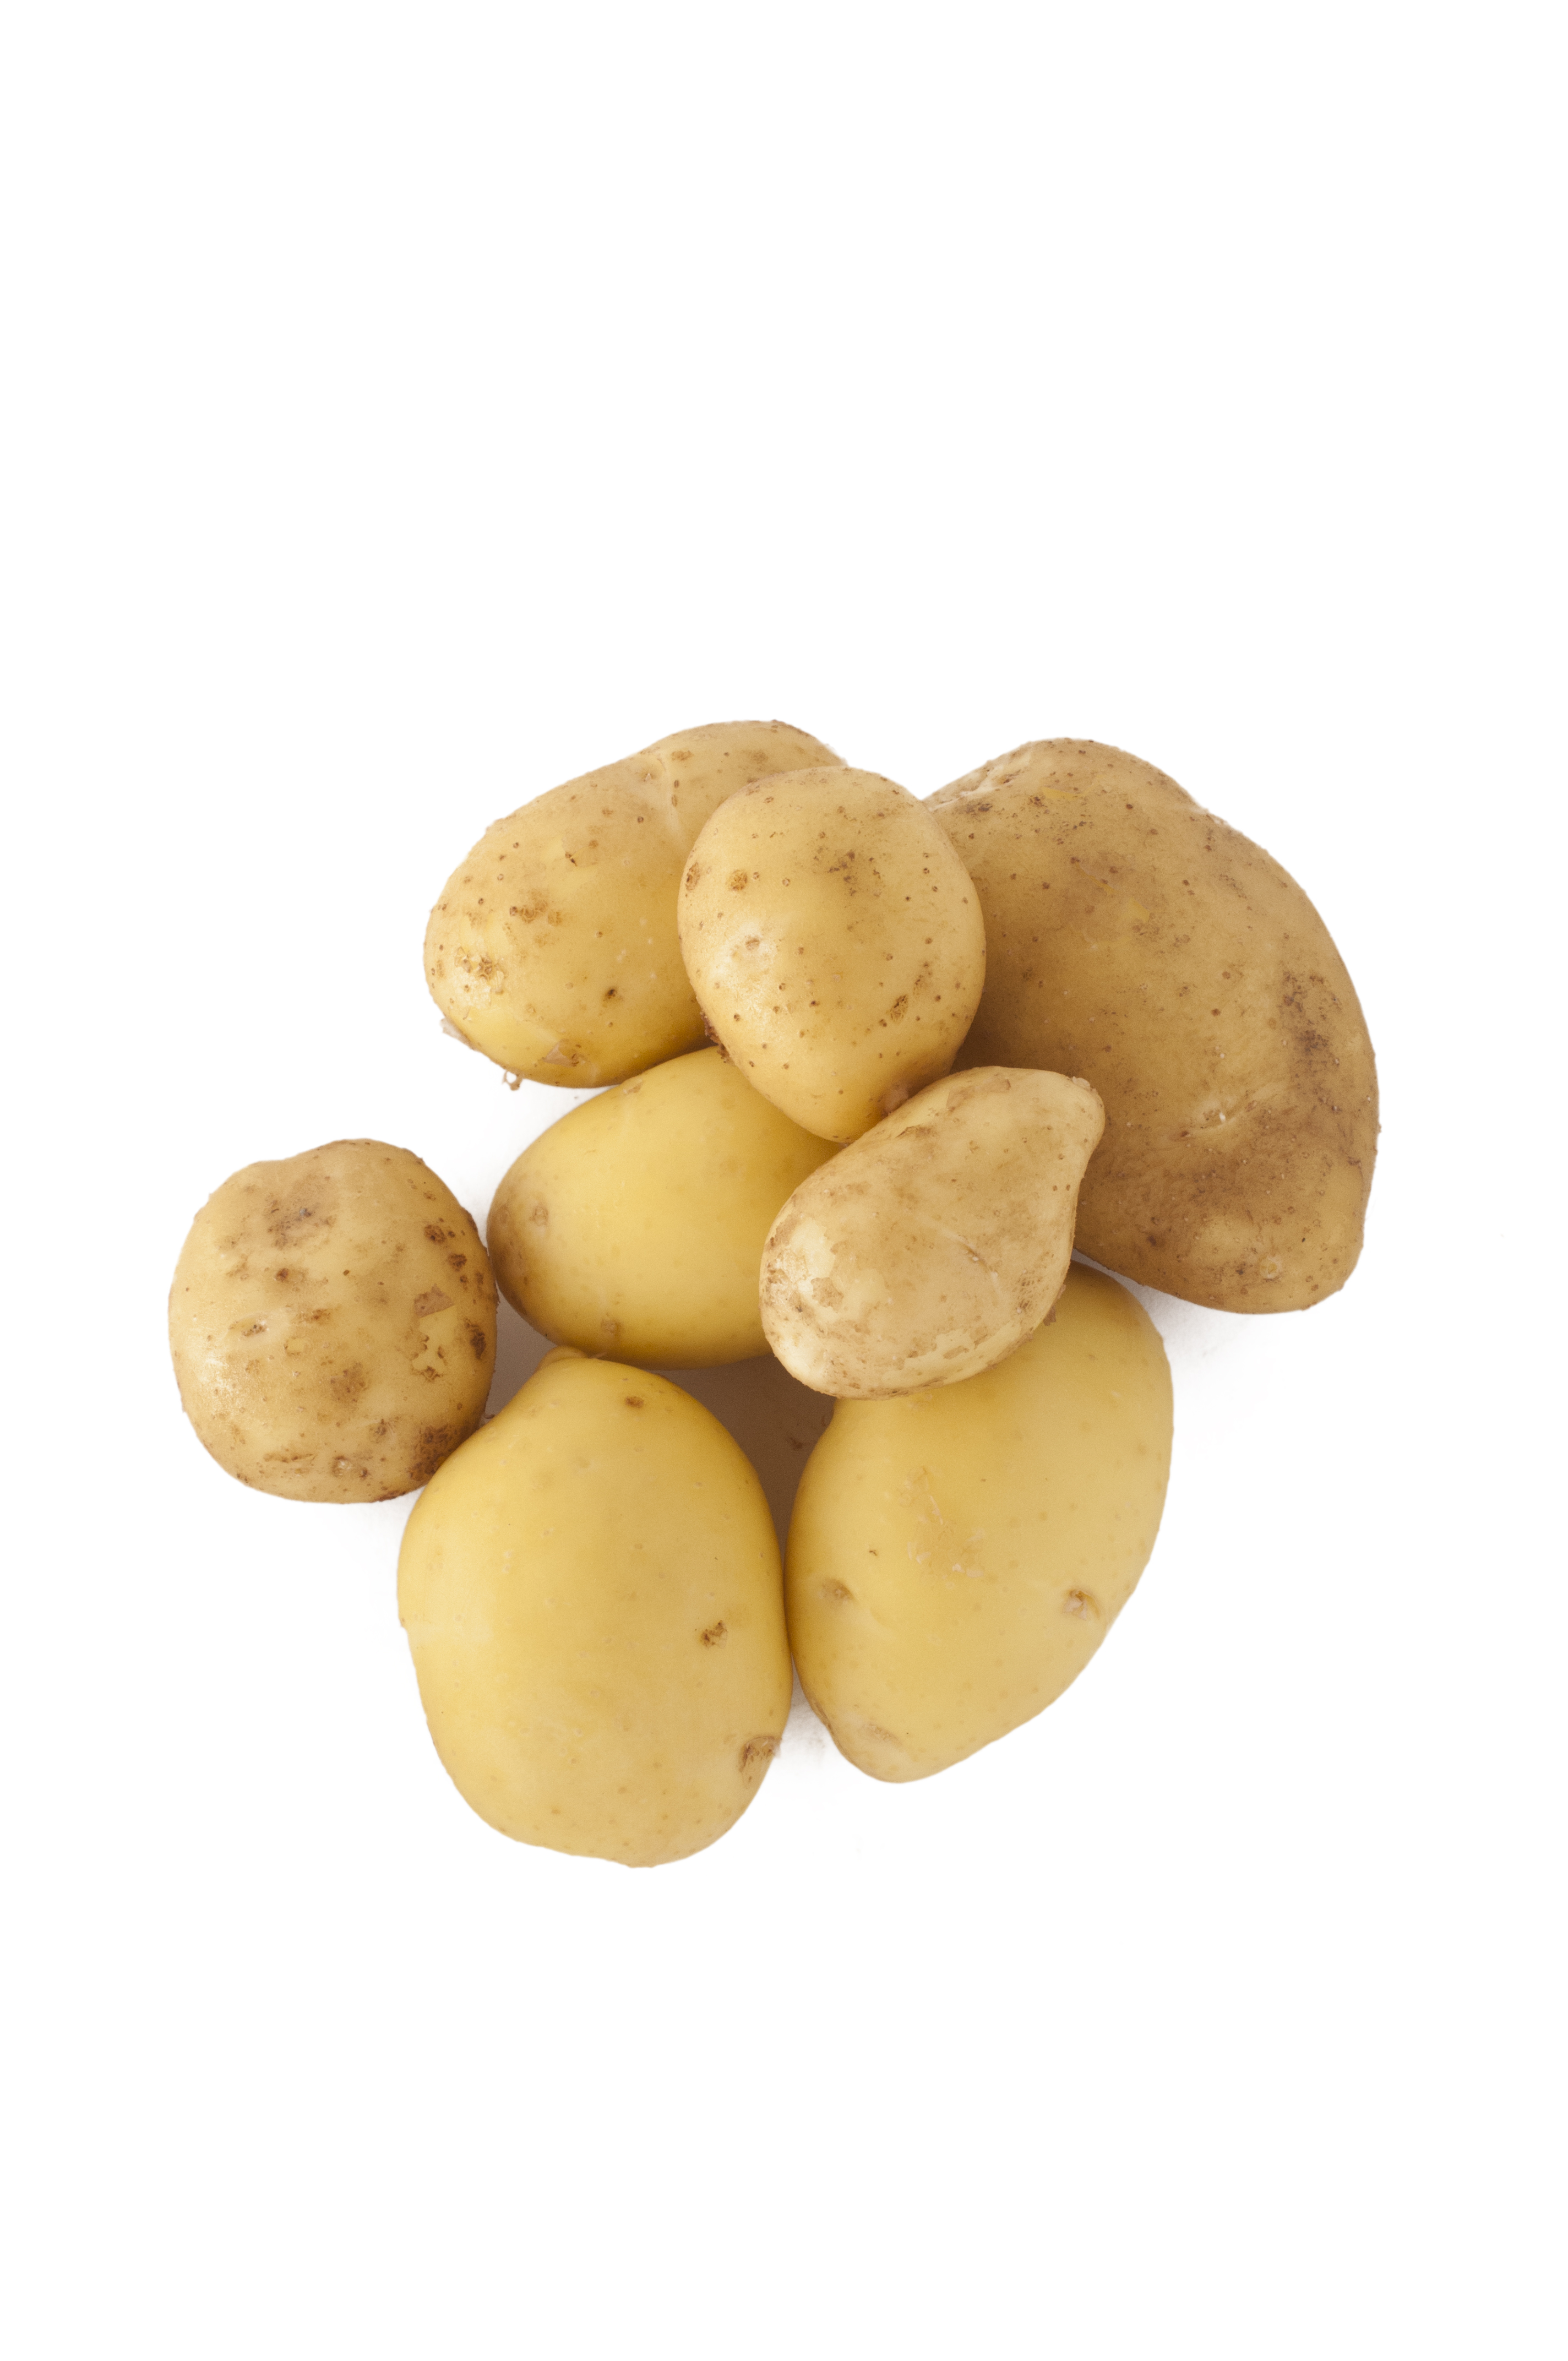 Fresh Potatoes, Tuberous, Vegetable, Starchy, Fresh, HQ Photo